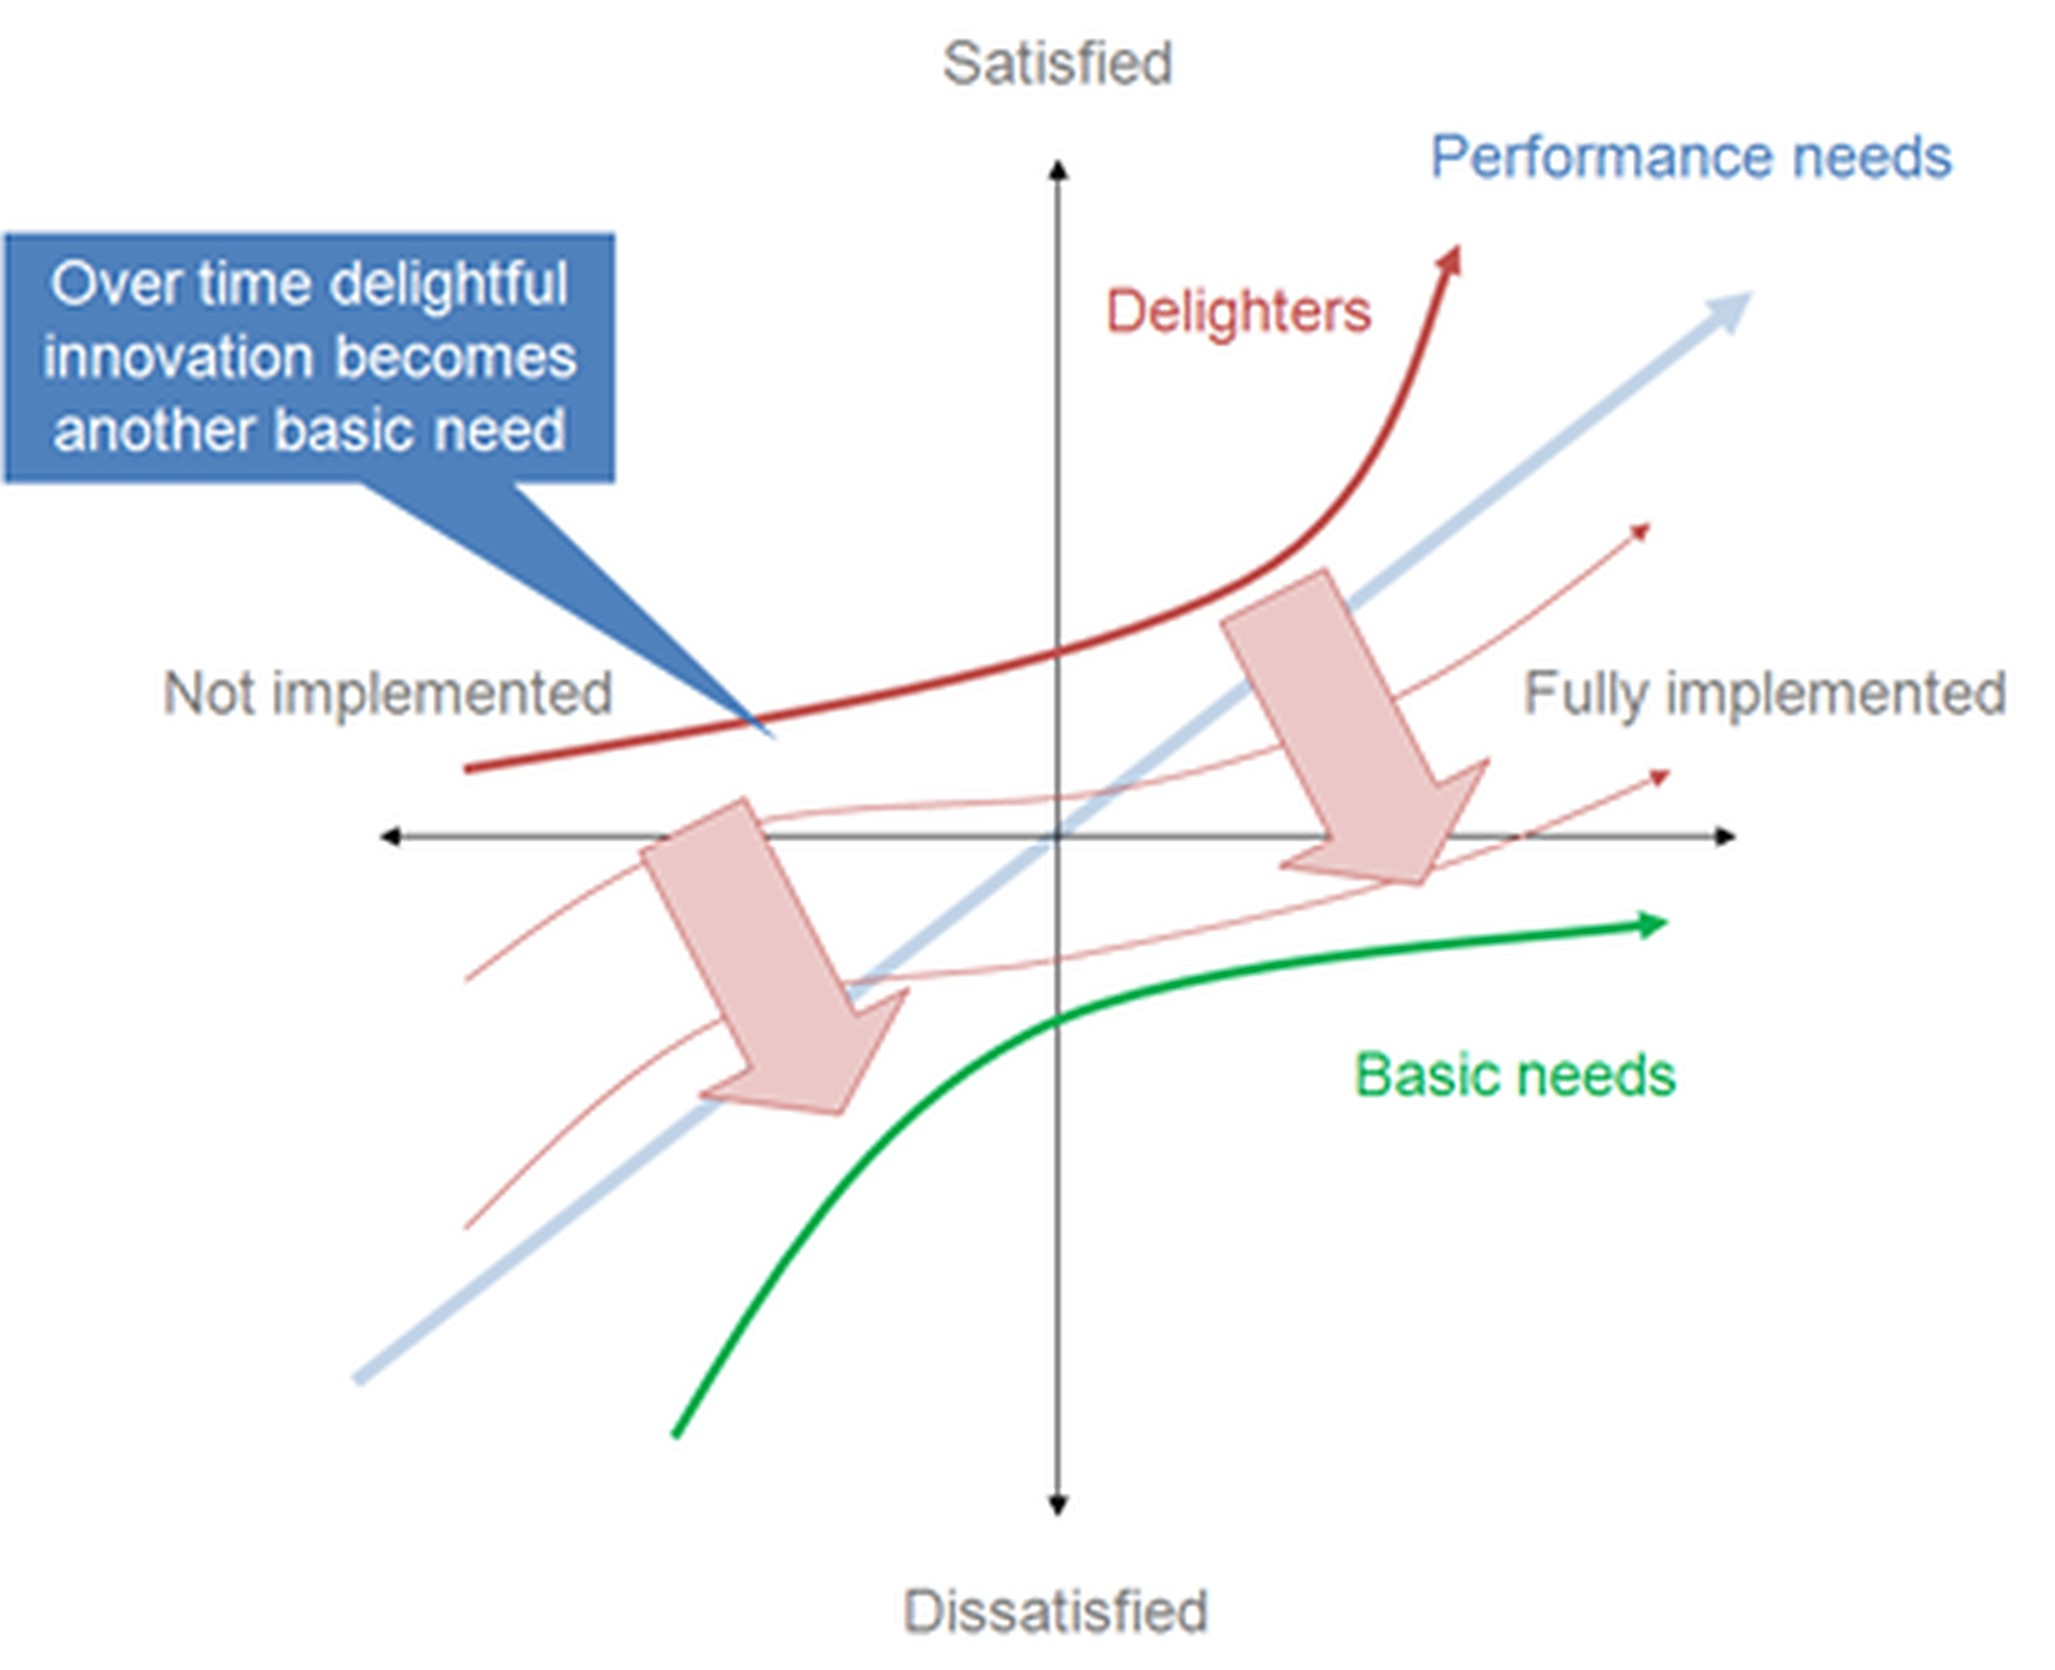 Kano model for product development and customer satisfaction